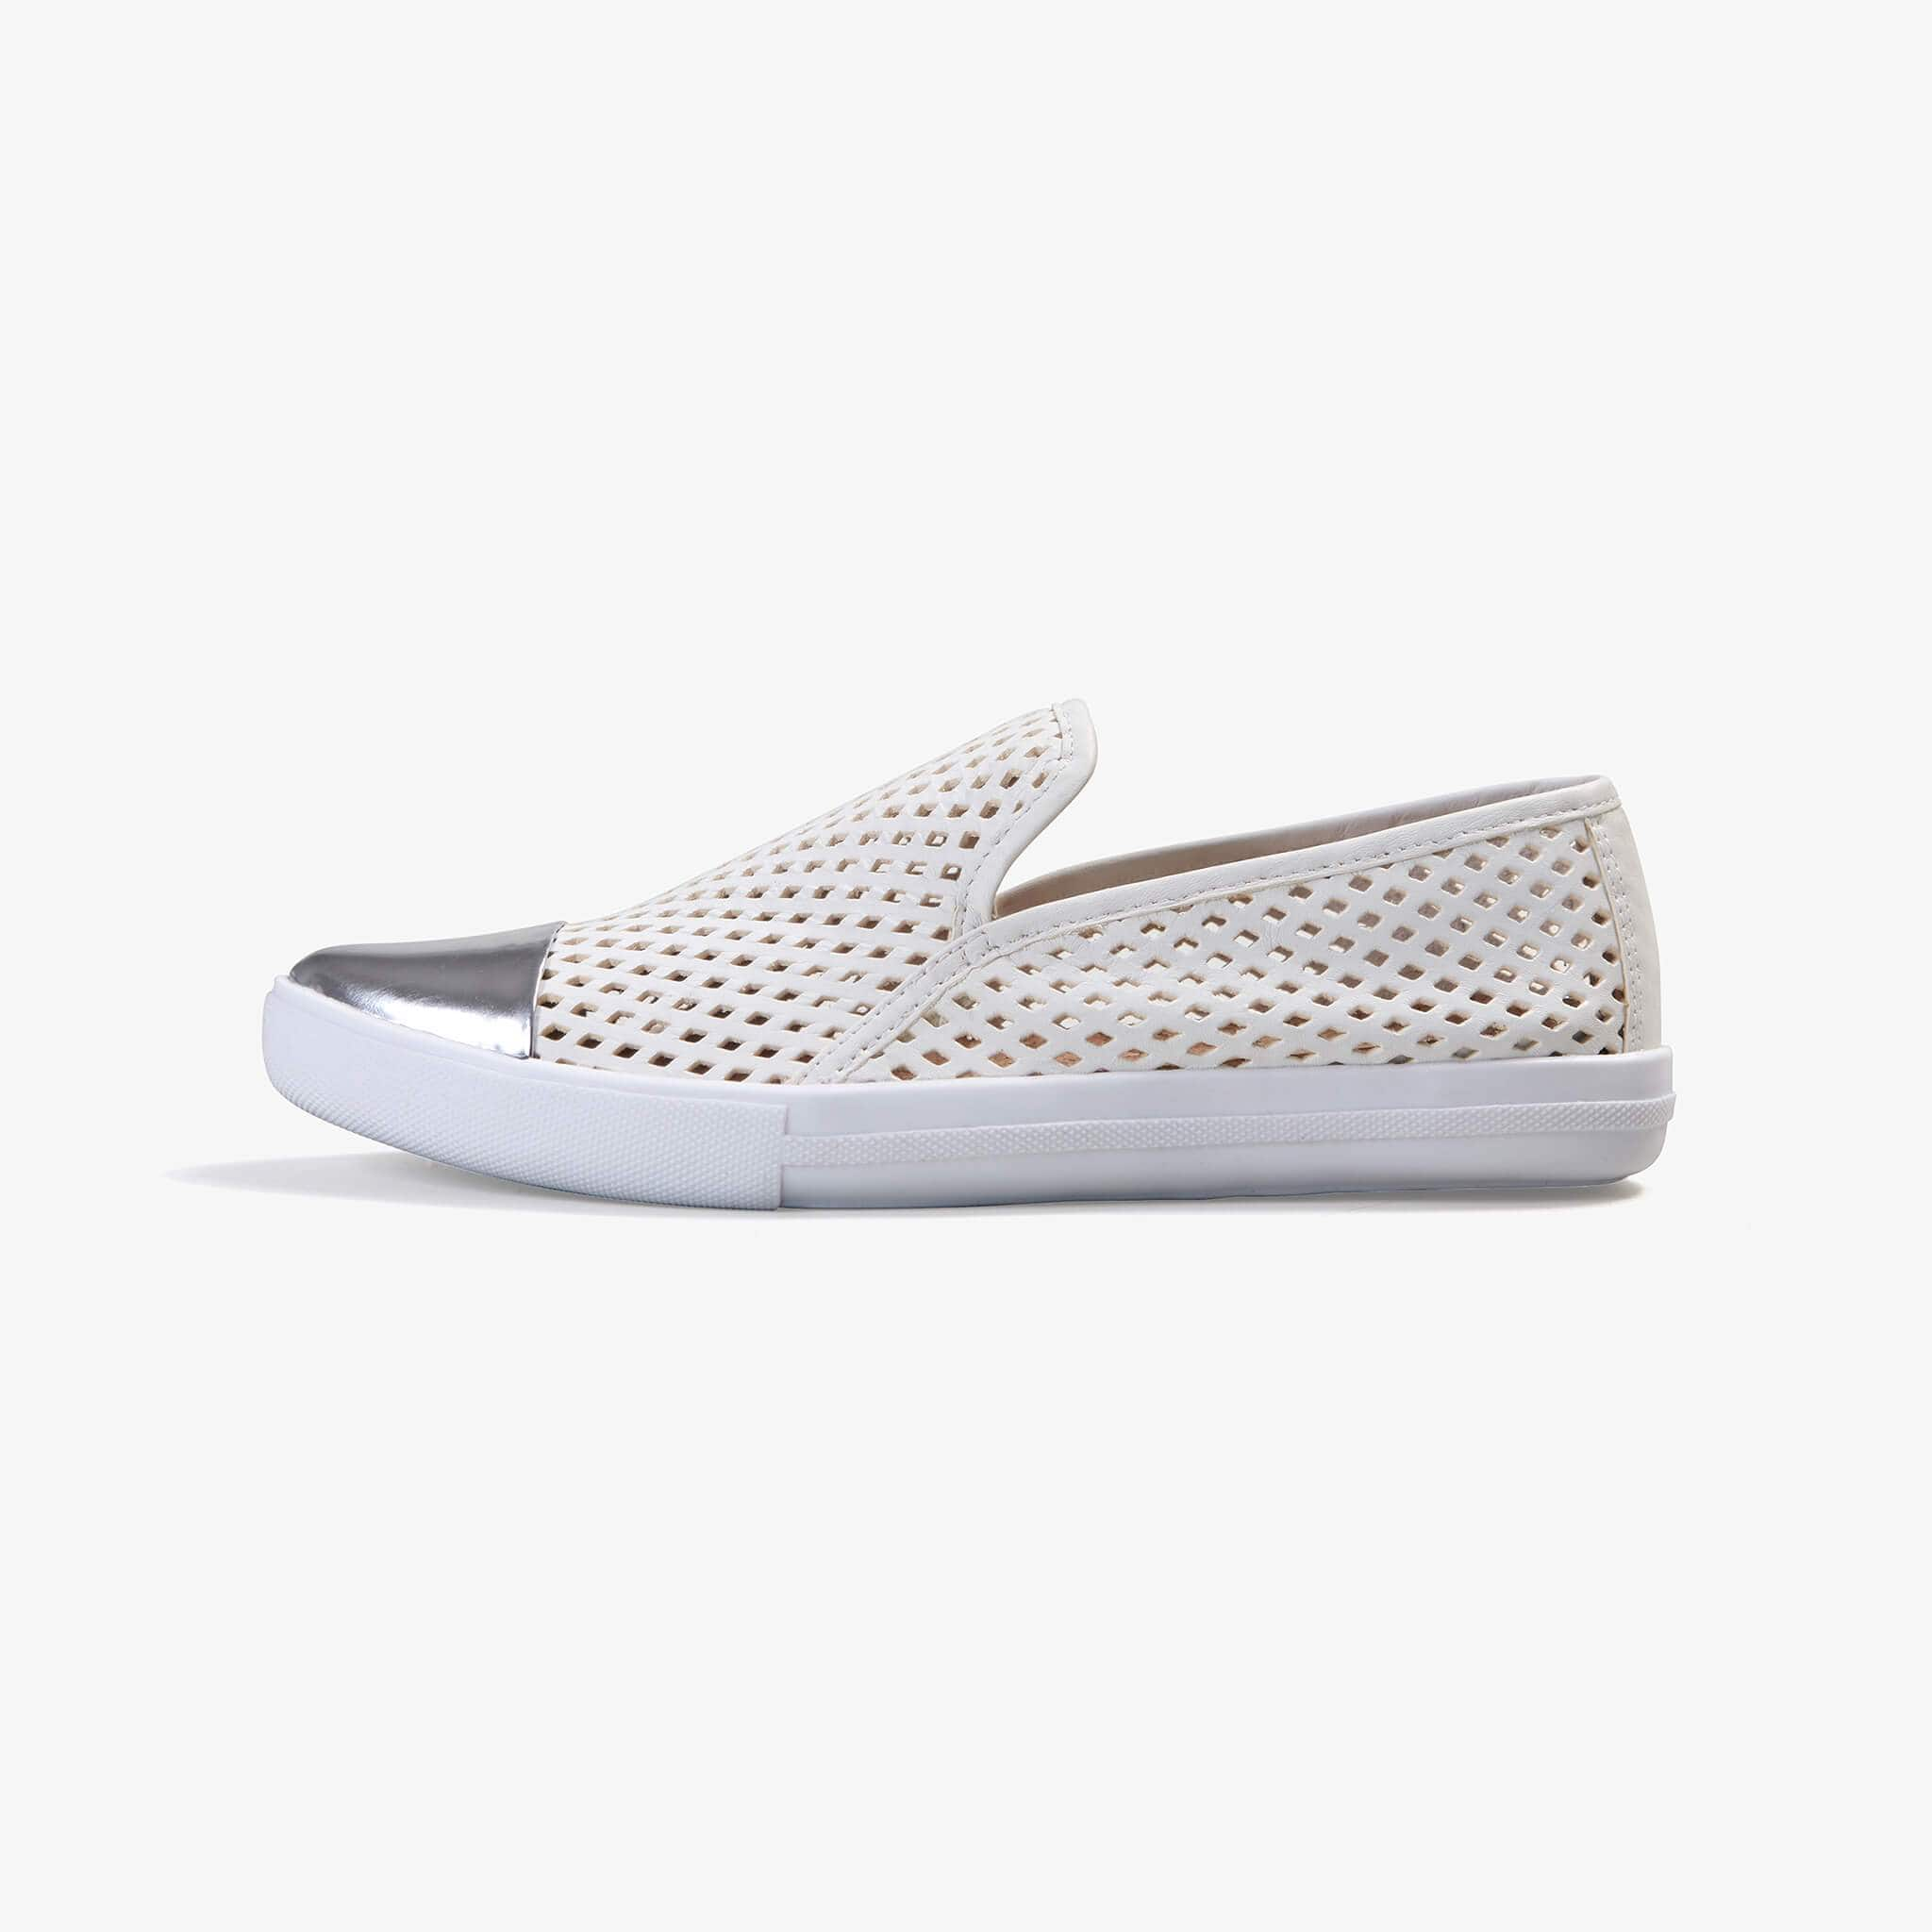 Jibs Slim White + Silver Slip On Sneaker Flat Shoe Side